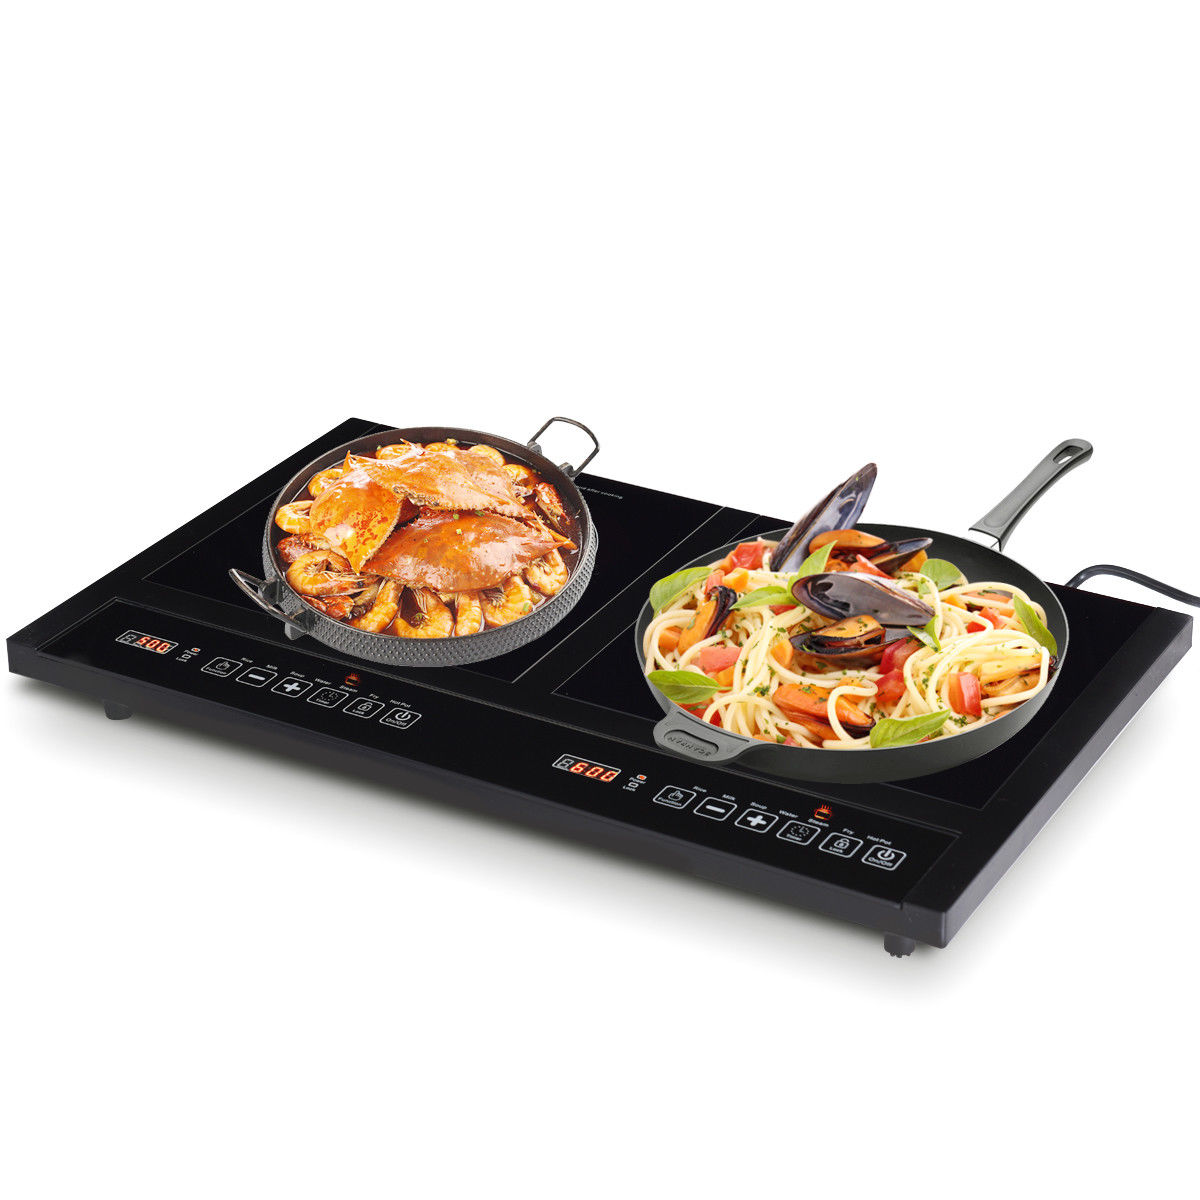 Costway Electric Dual Induction Cooker Cooktop 1800W Countertop Double Burner Portable